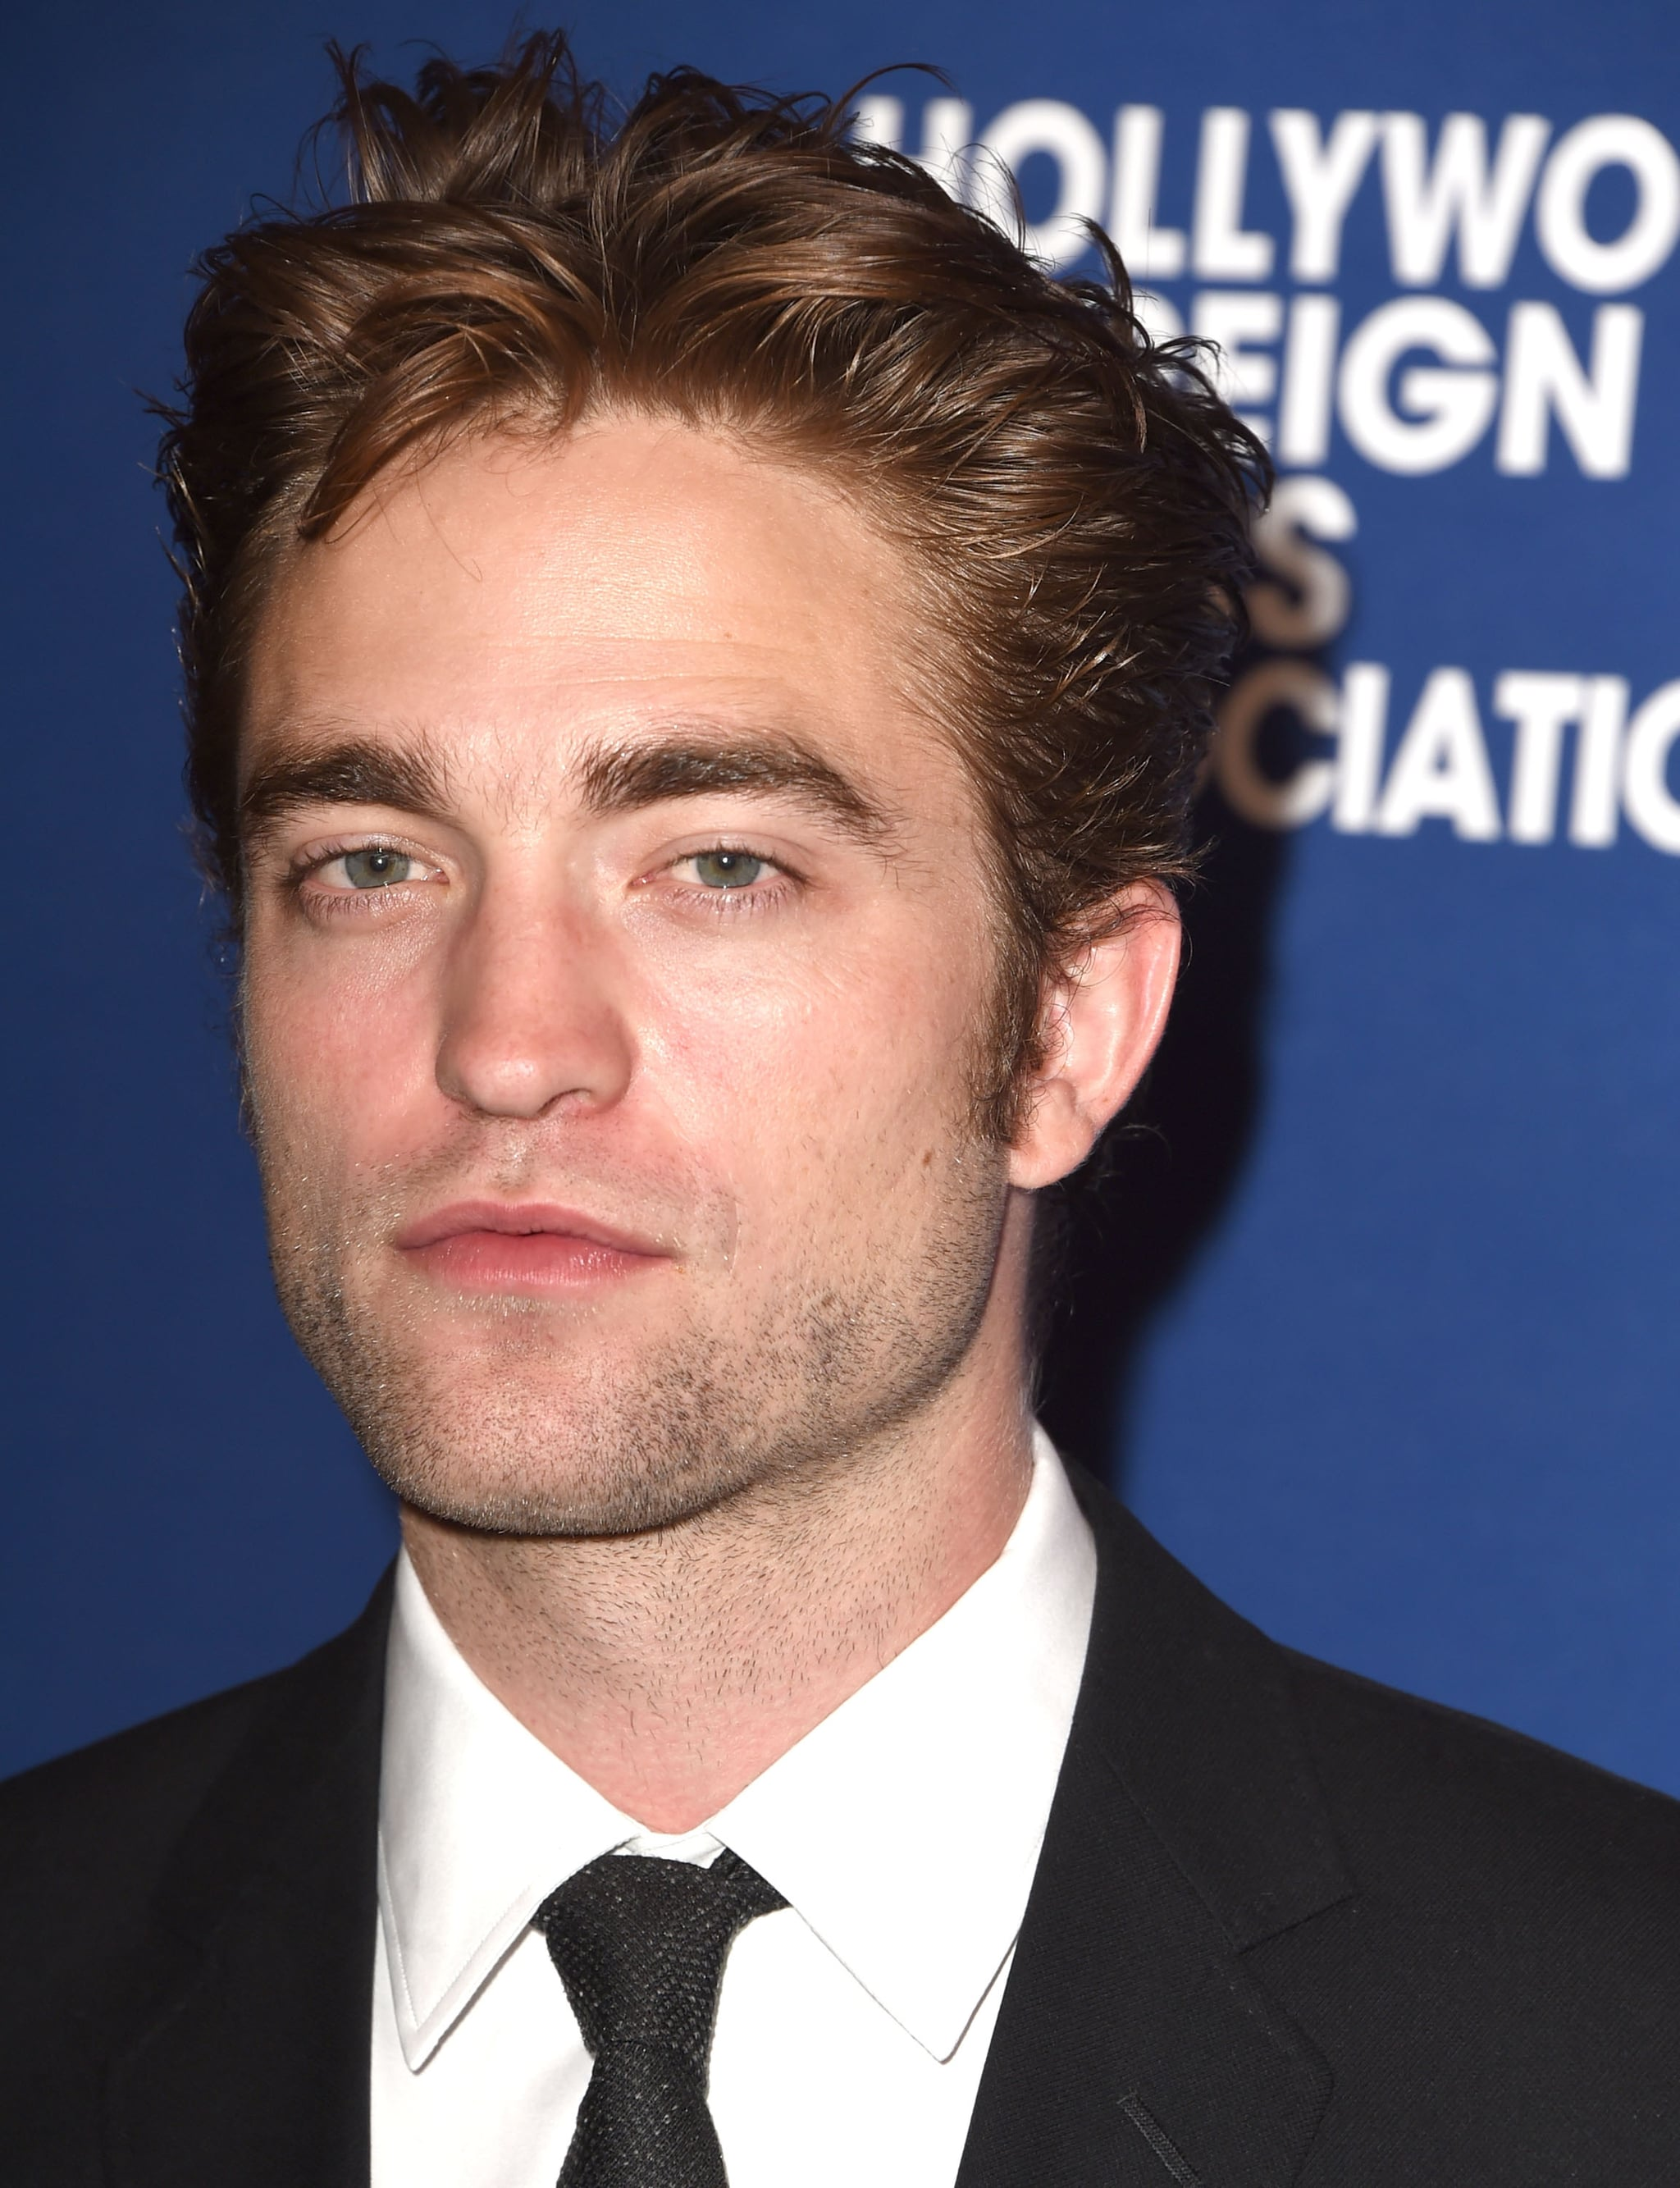 There Is Way Too Much Hotness Happening at This Hollywood Event